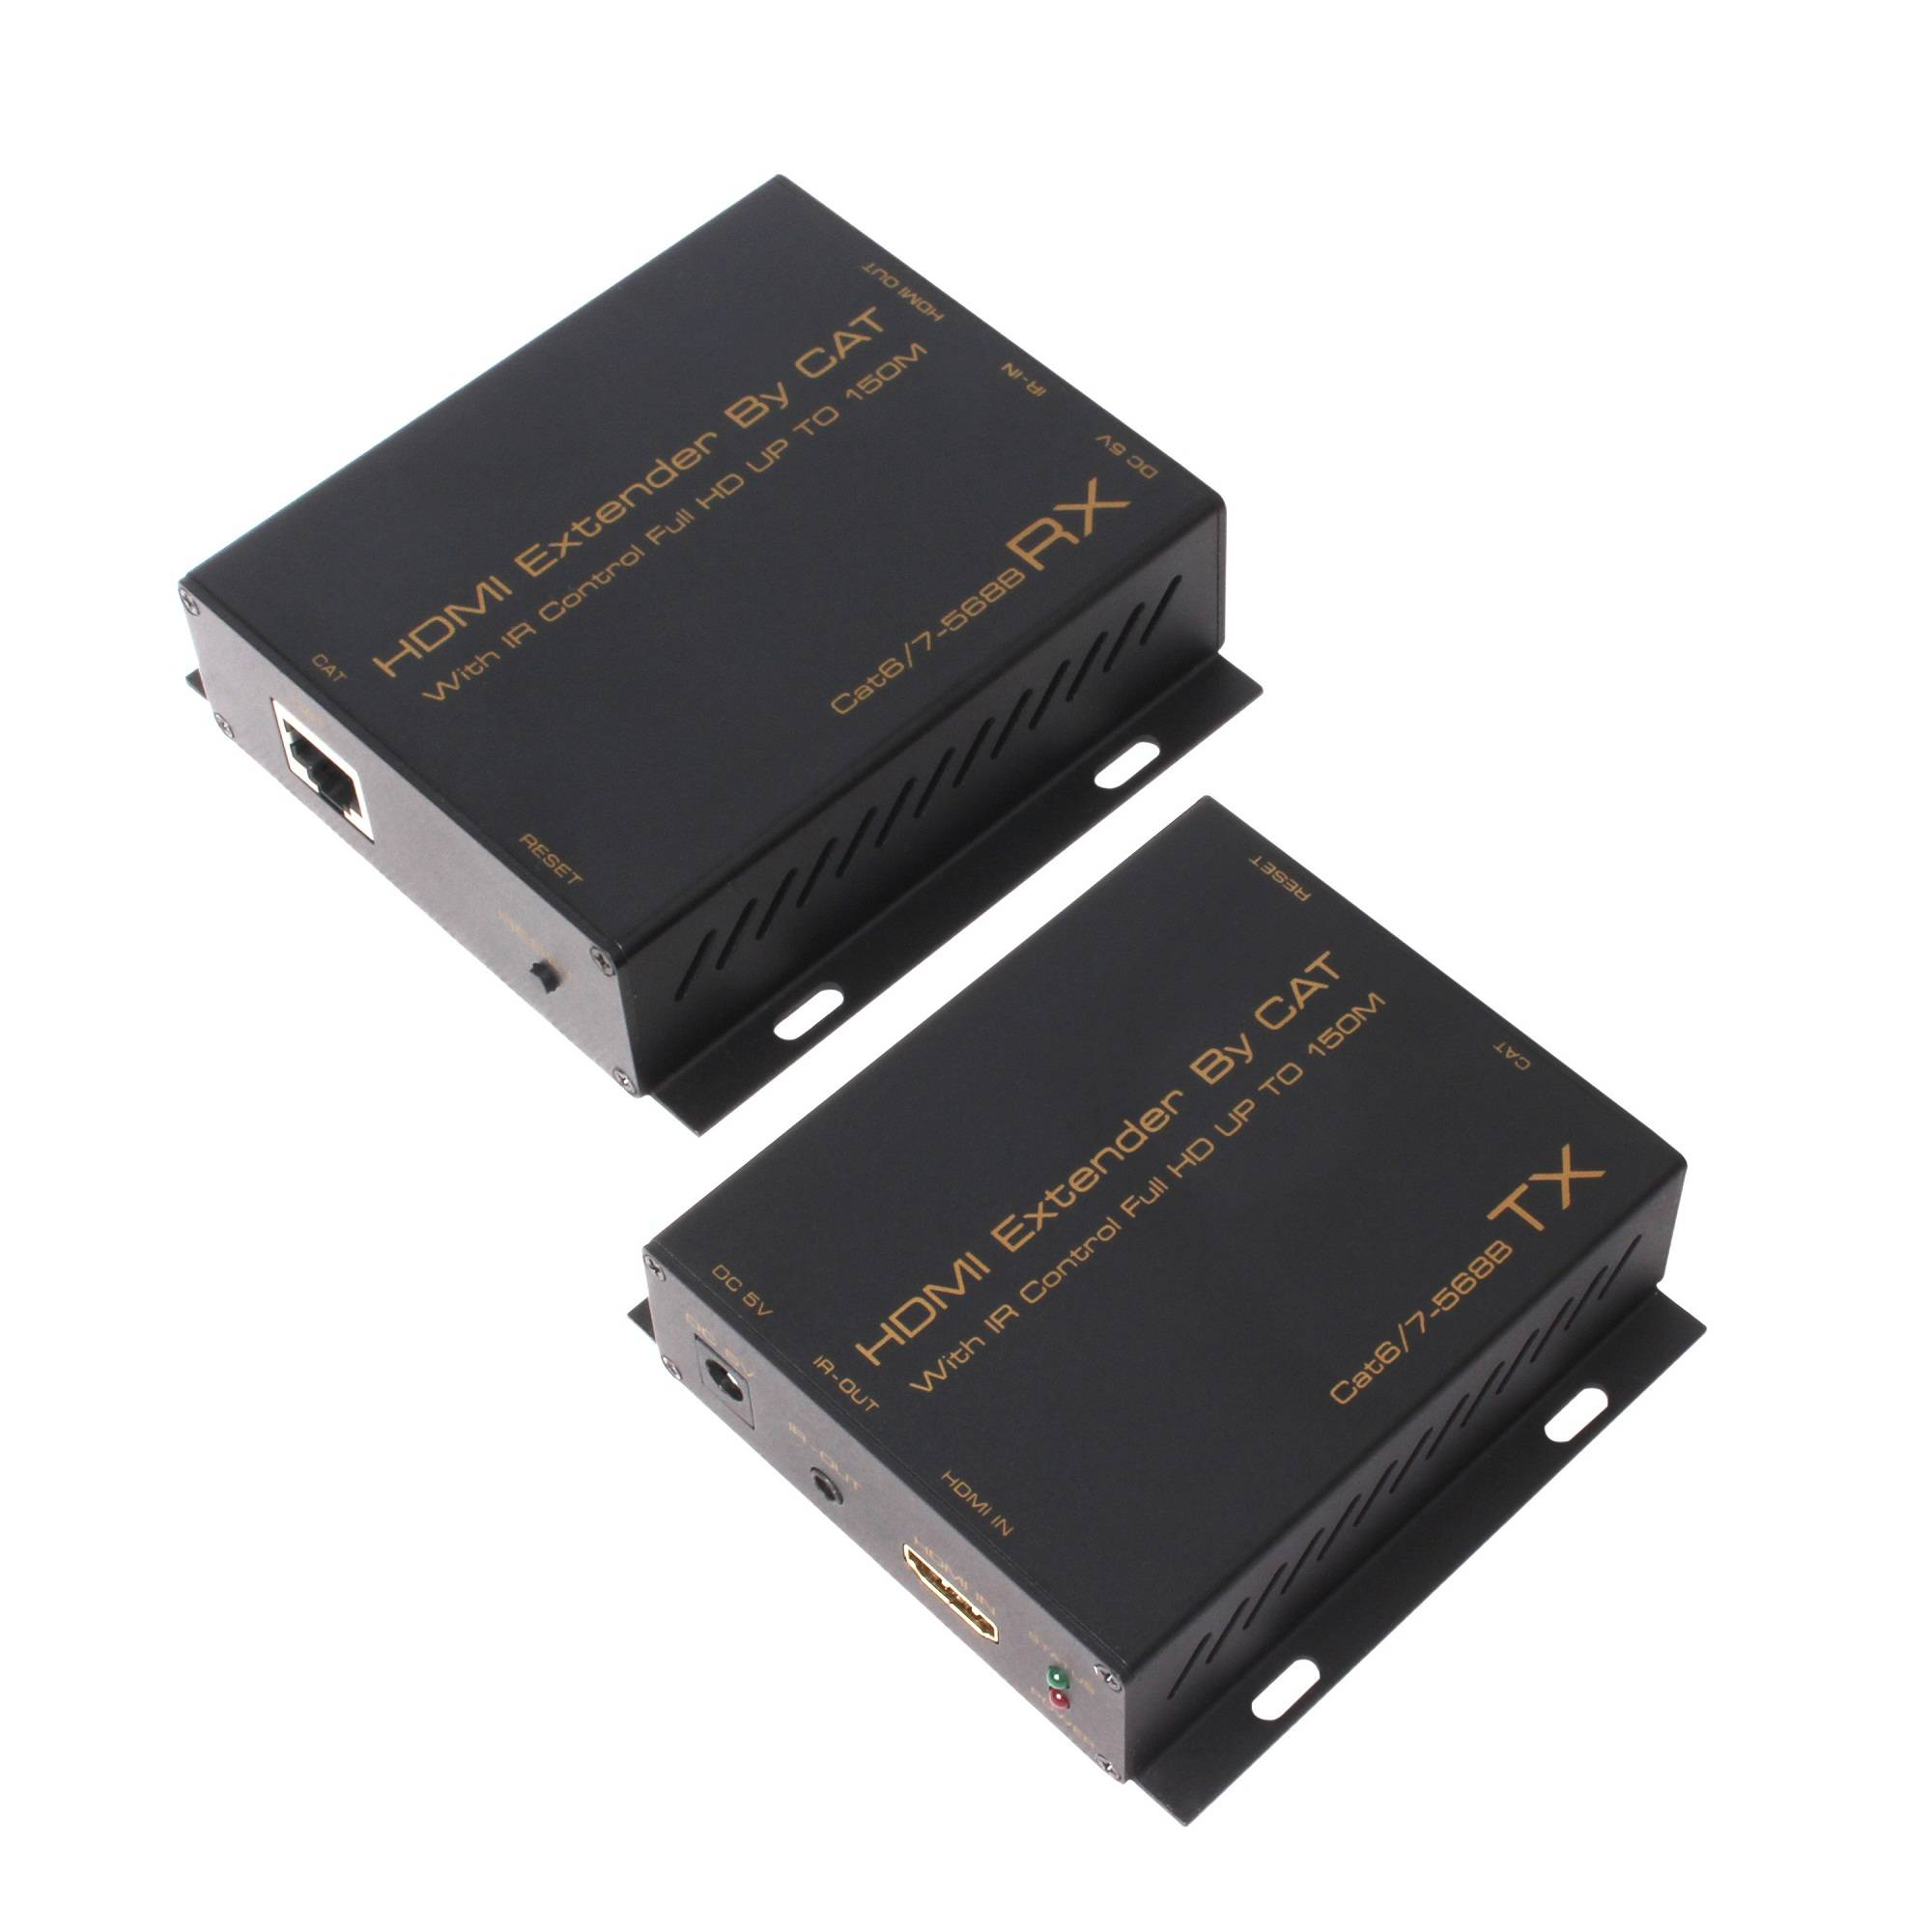 HDMI-CAT-HDMI Extender 150m by singal over cat6/7